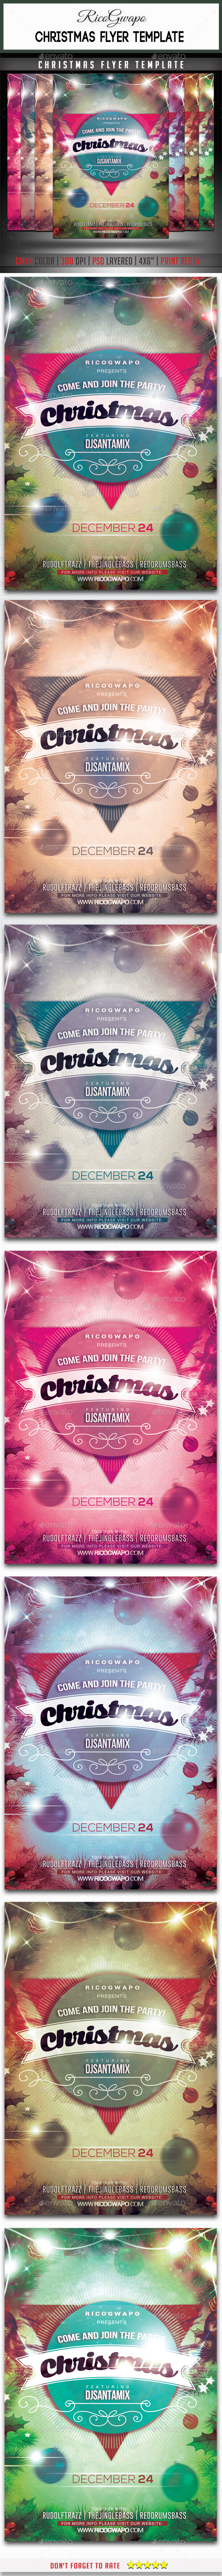 Christmas Flyer Template - Flyers Print Templates